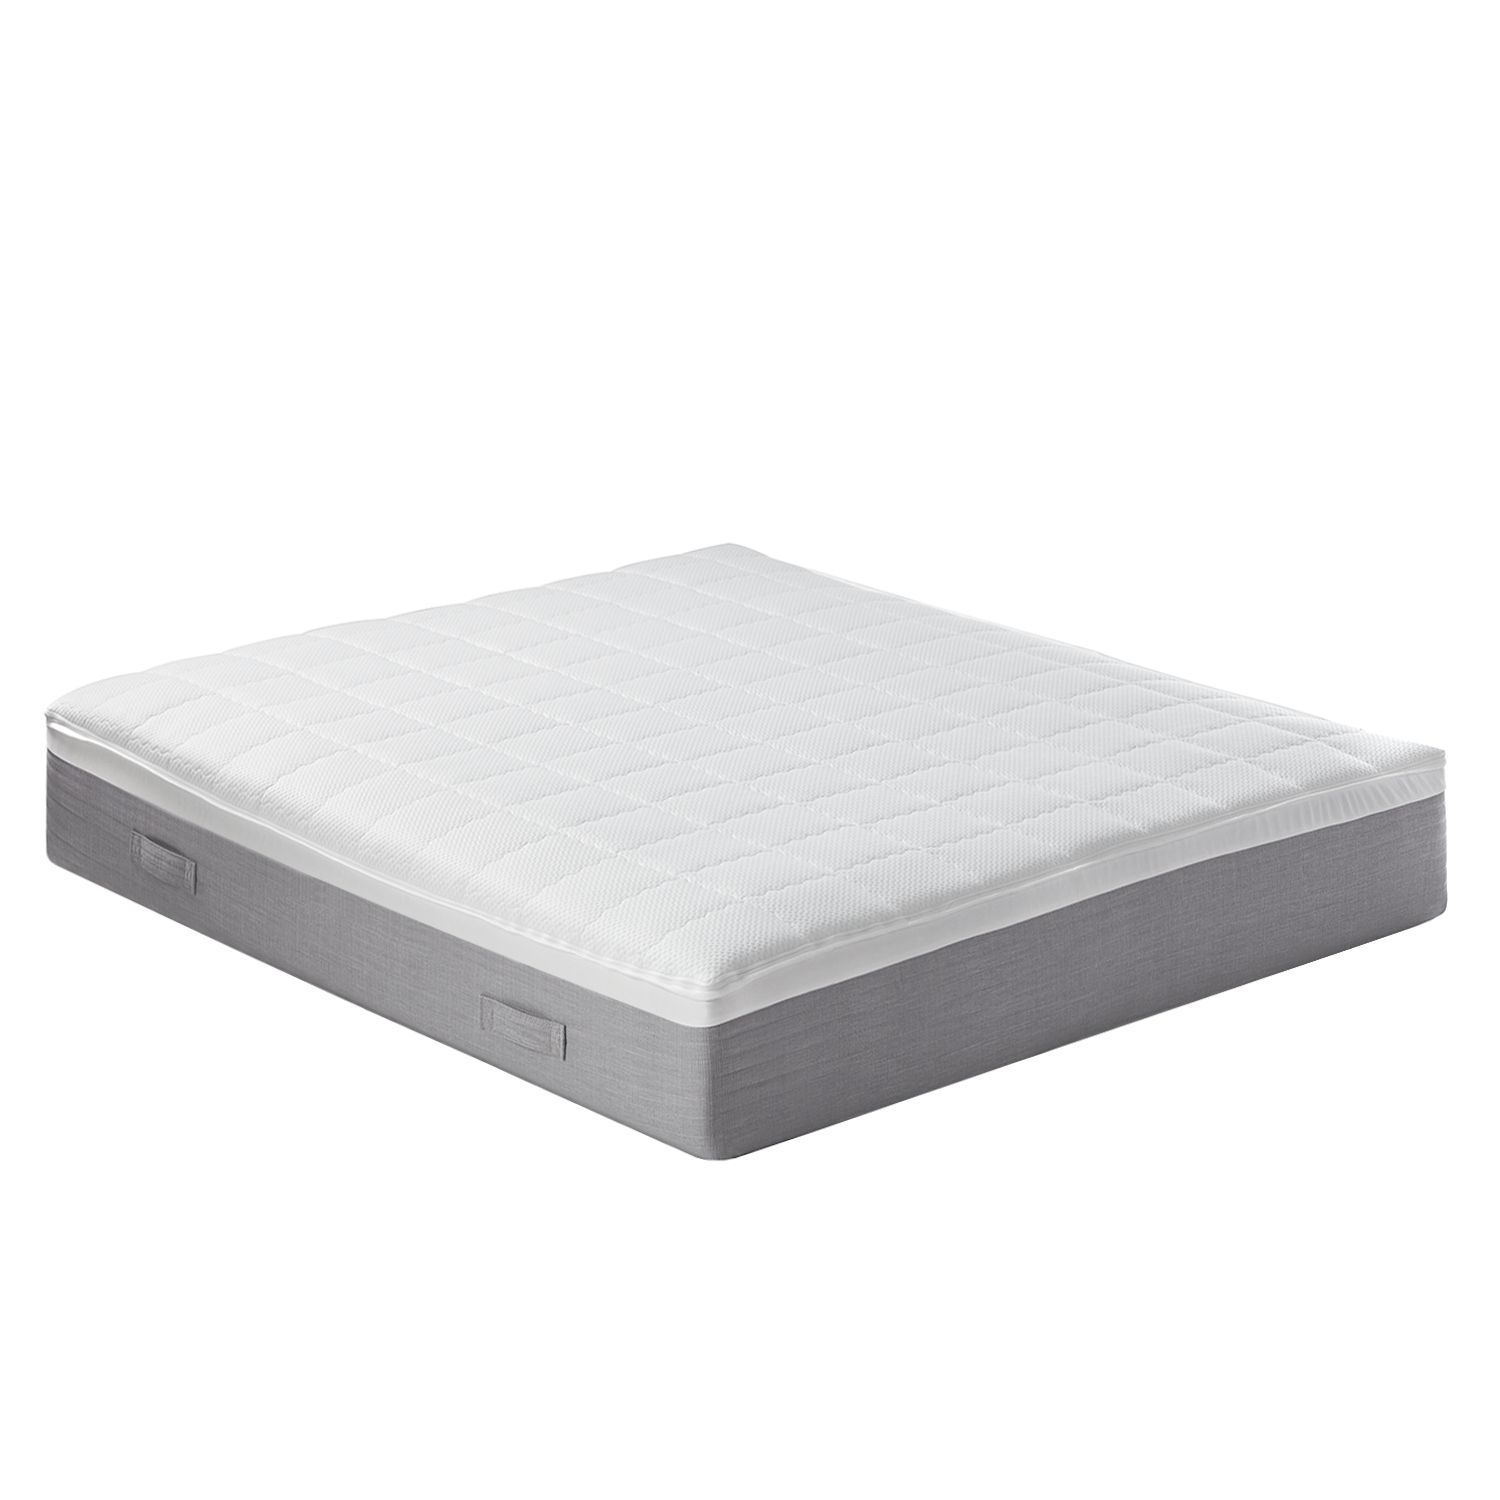 Matelas boxspring Smood Select - 180 x 200cm, Smood